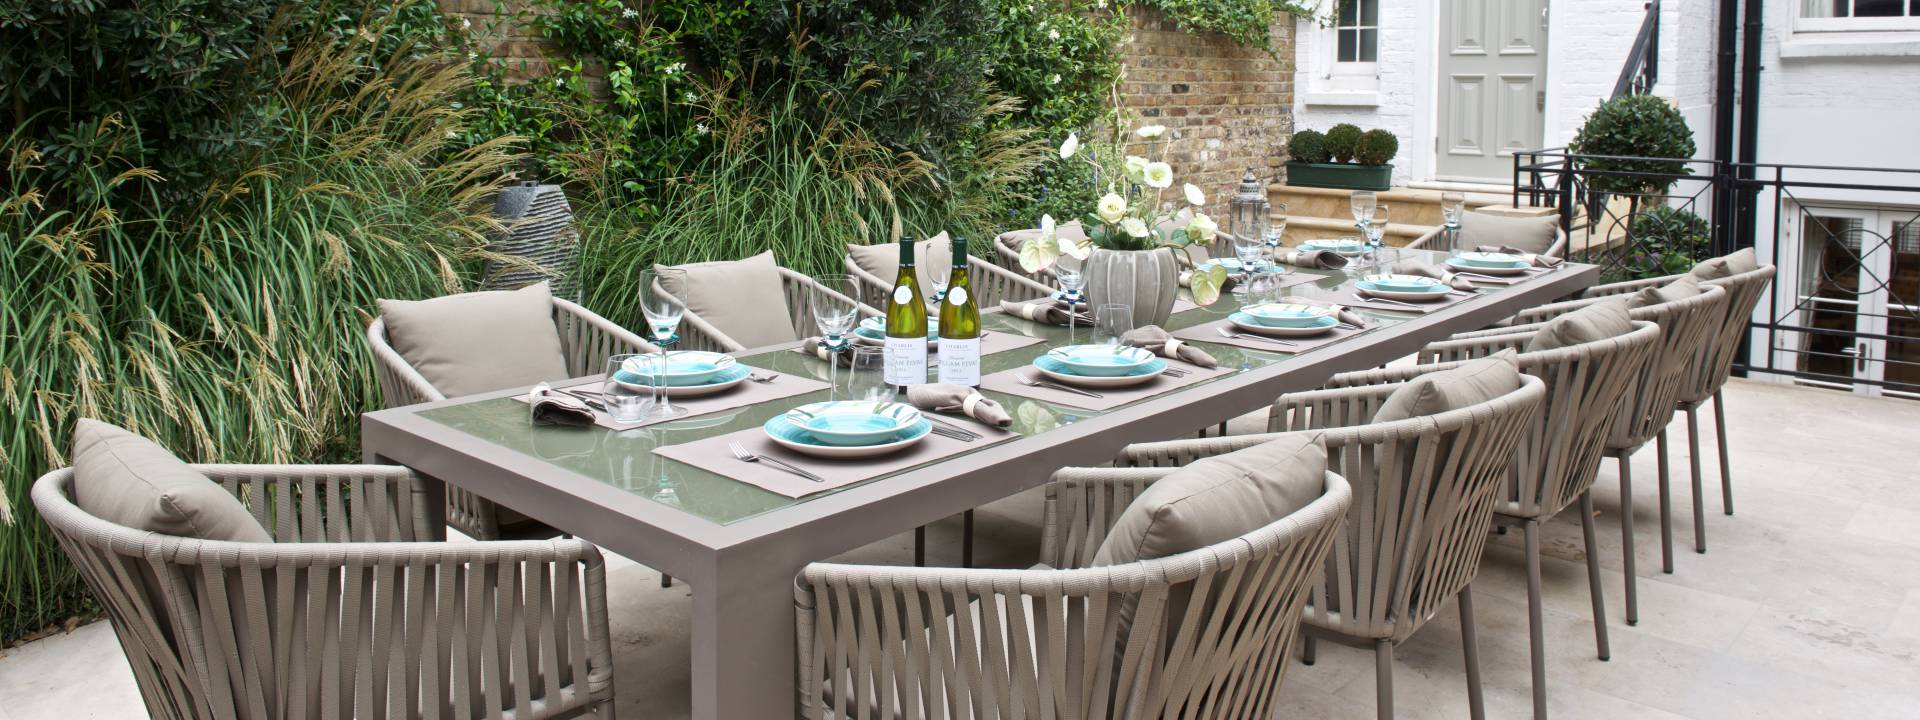 Exquisite Town-house.  Stunning dining table - garden. Taylor Interiors.